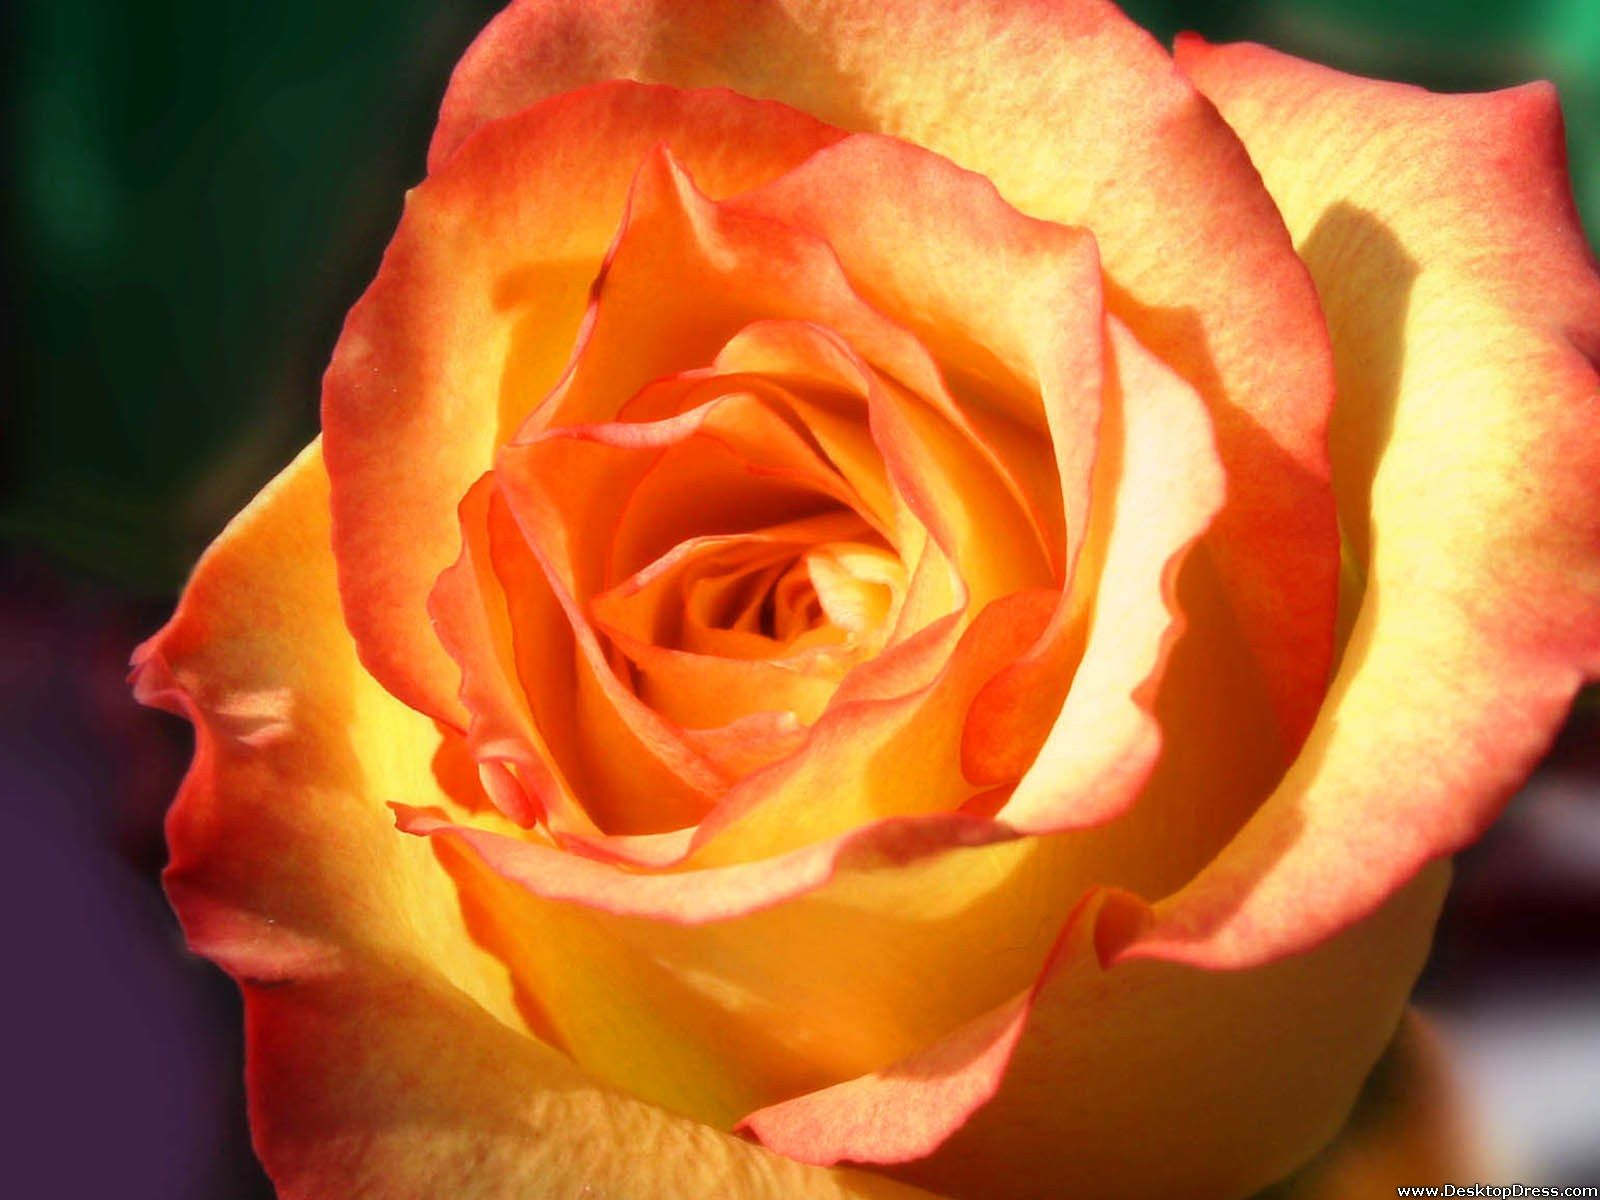 Yellow rose yellow rose meaning yellow roses - What Is The Meaning And History Of Orange Roses